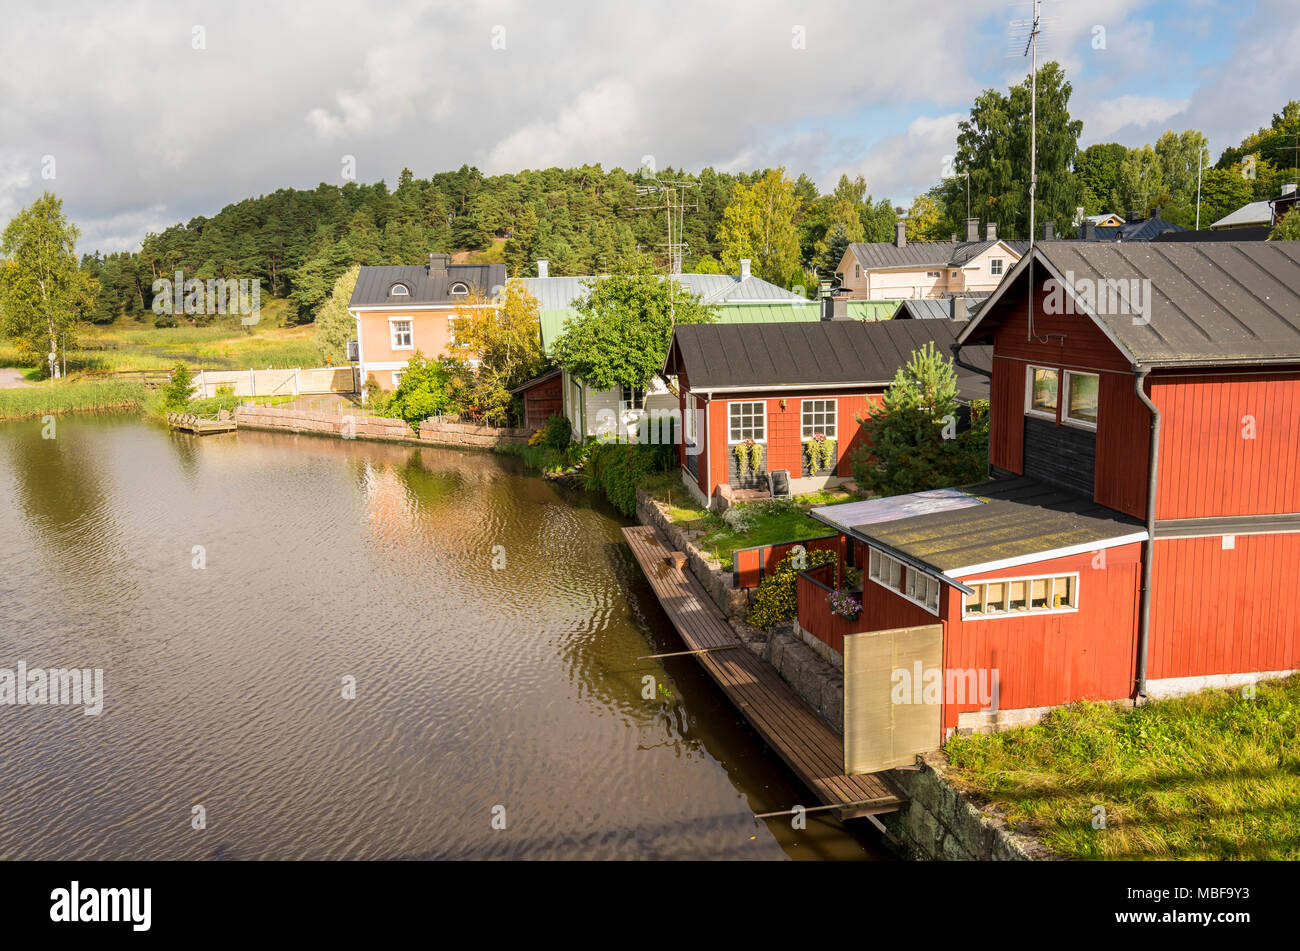 Painted wooden houses in the old town of Porvoo in Finland - Stock Image